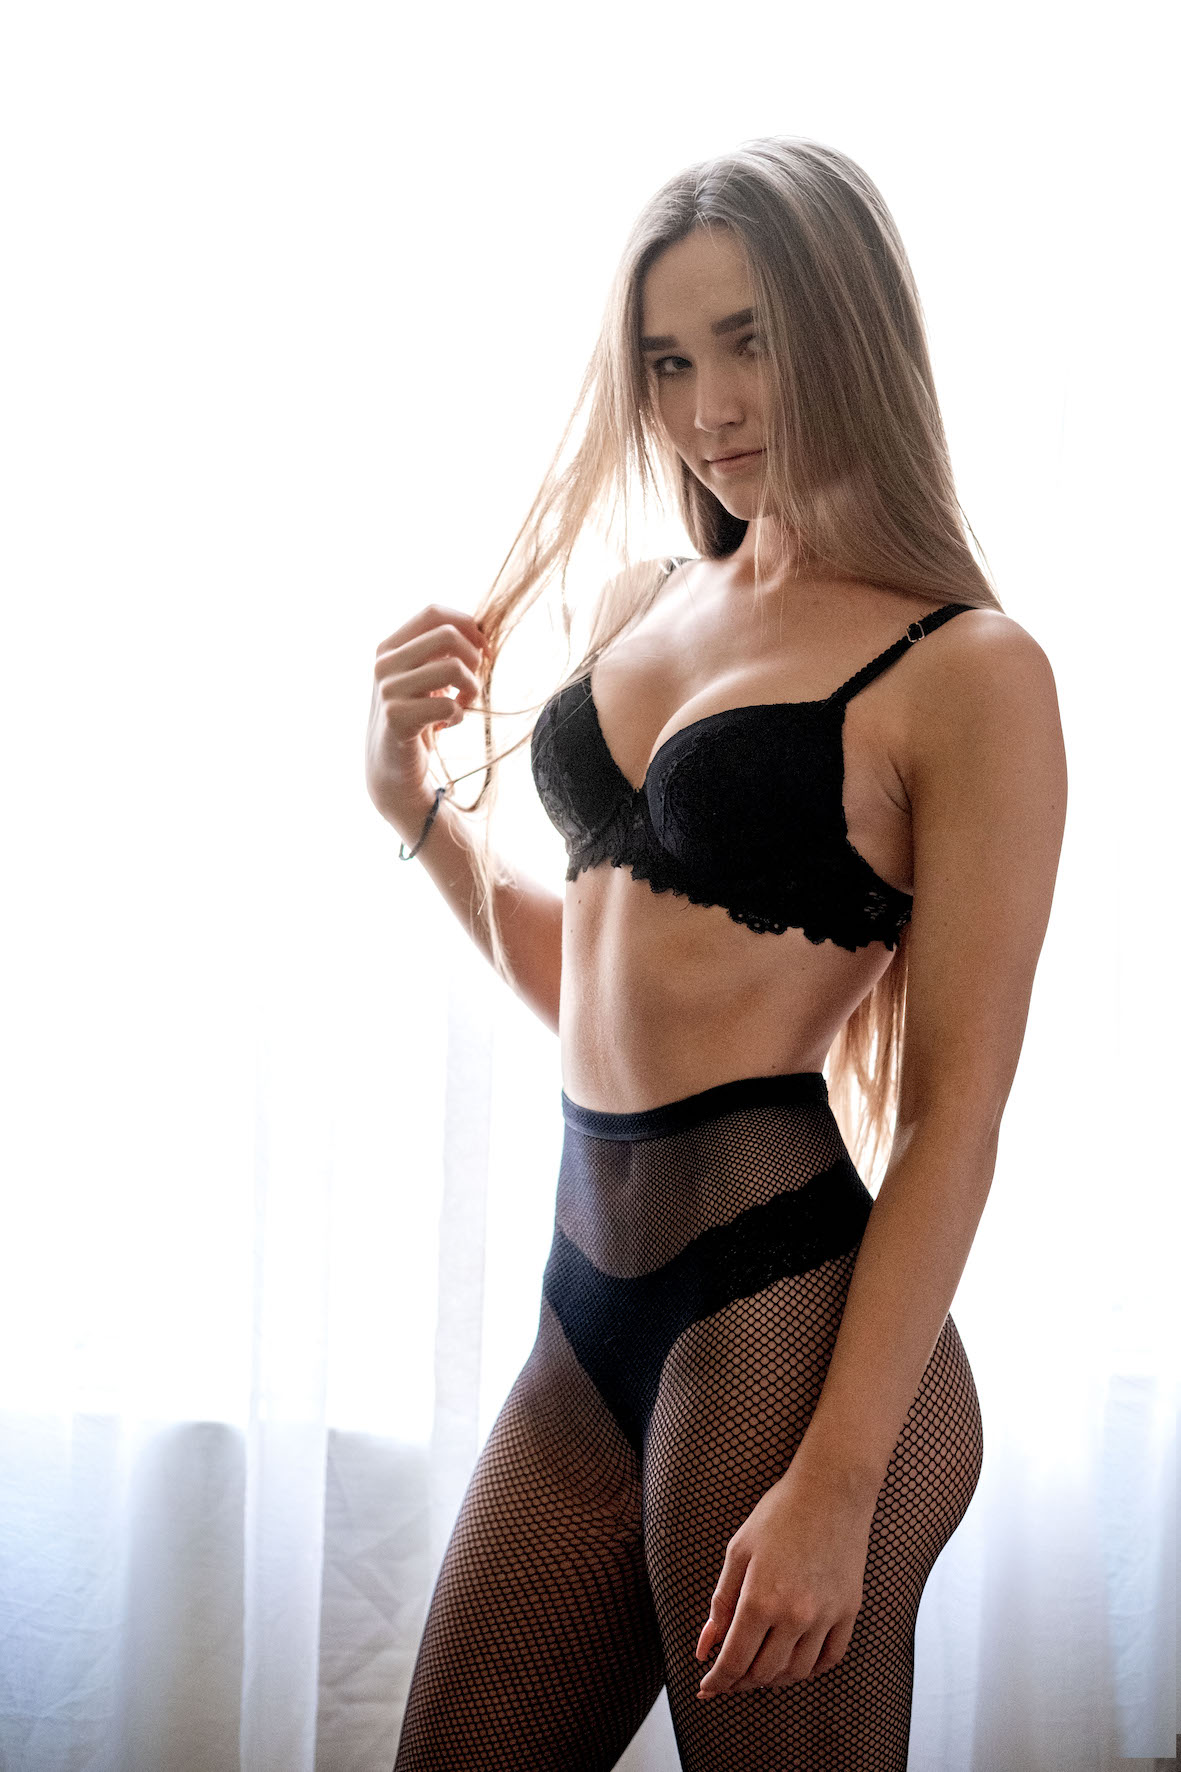 Meet Belle Westley in our SA Babes feature